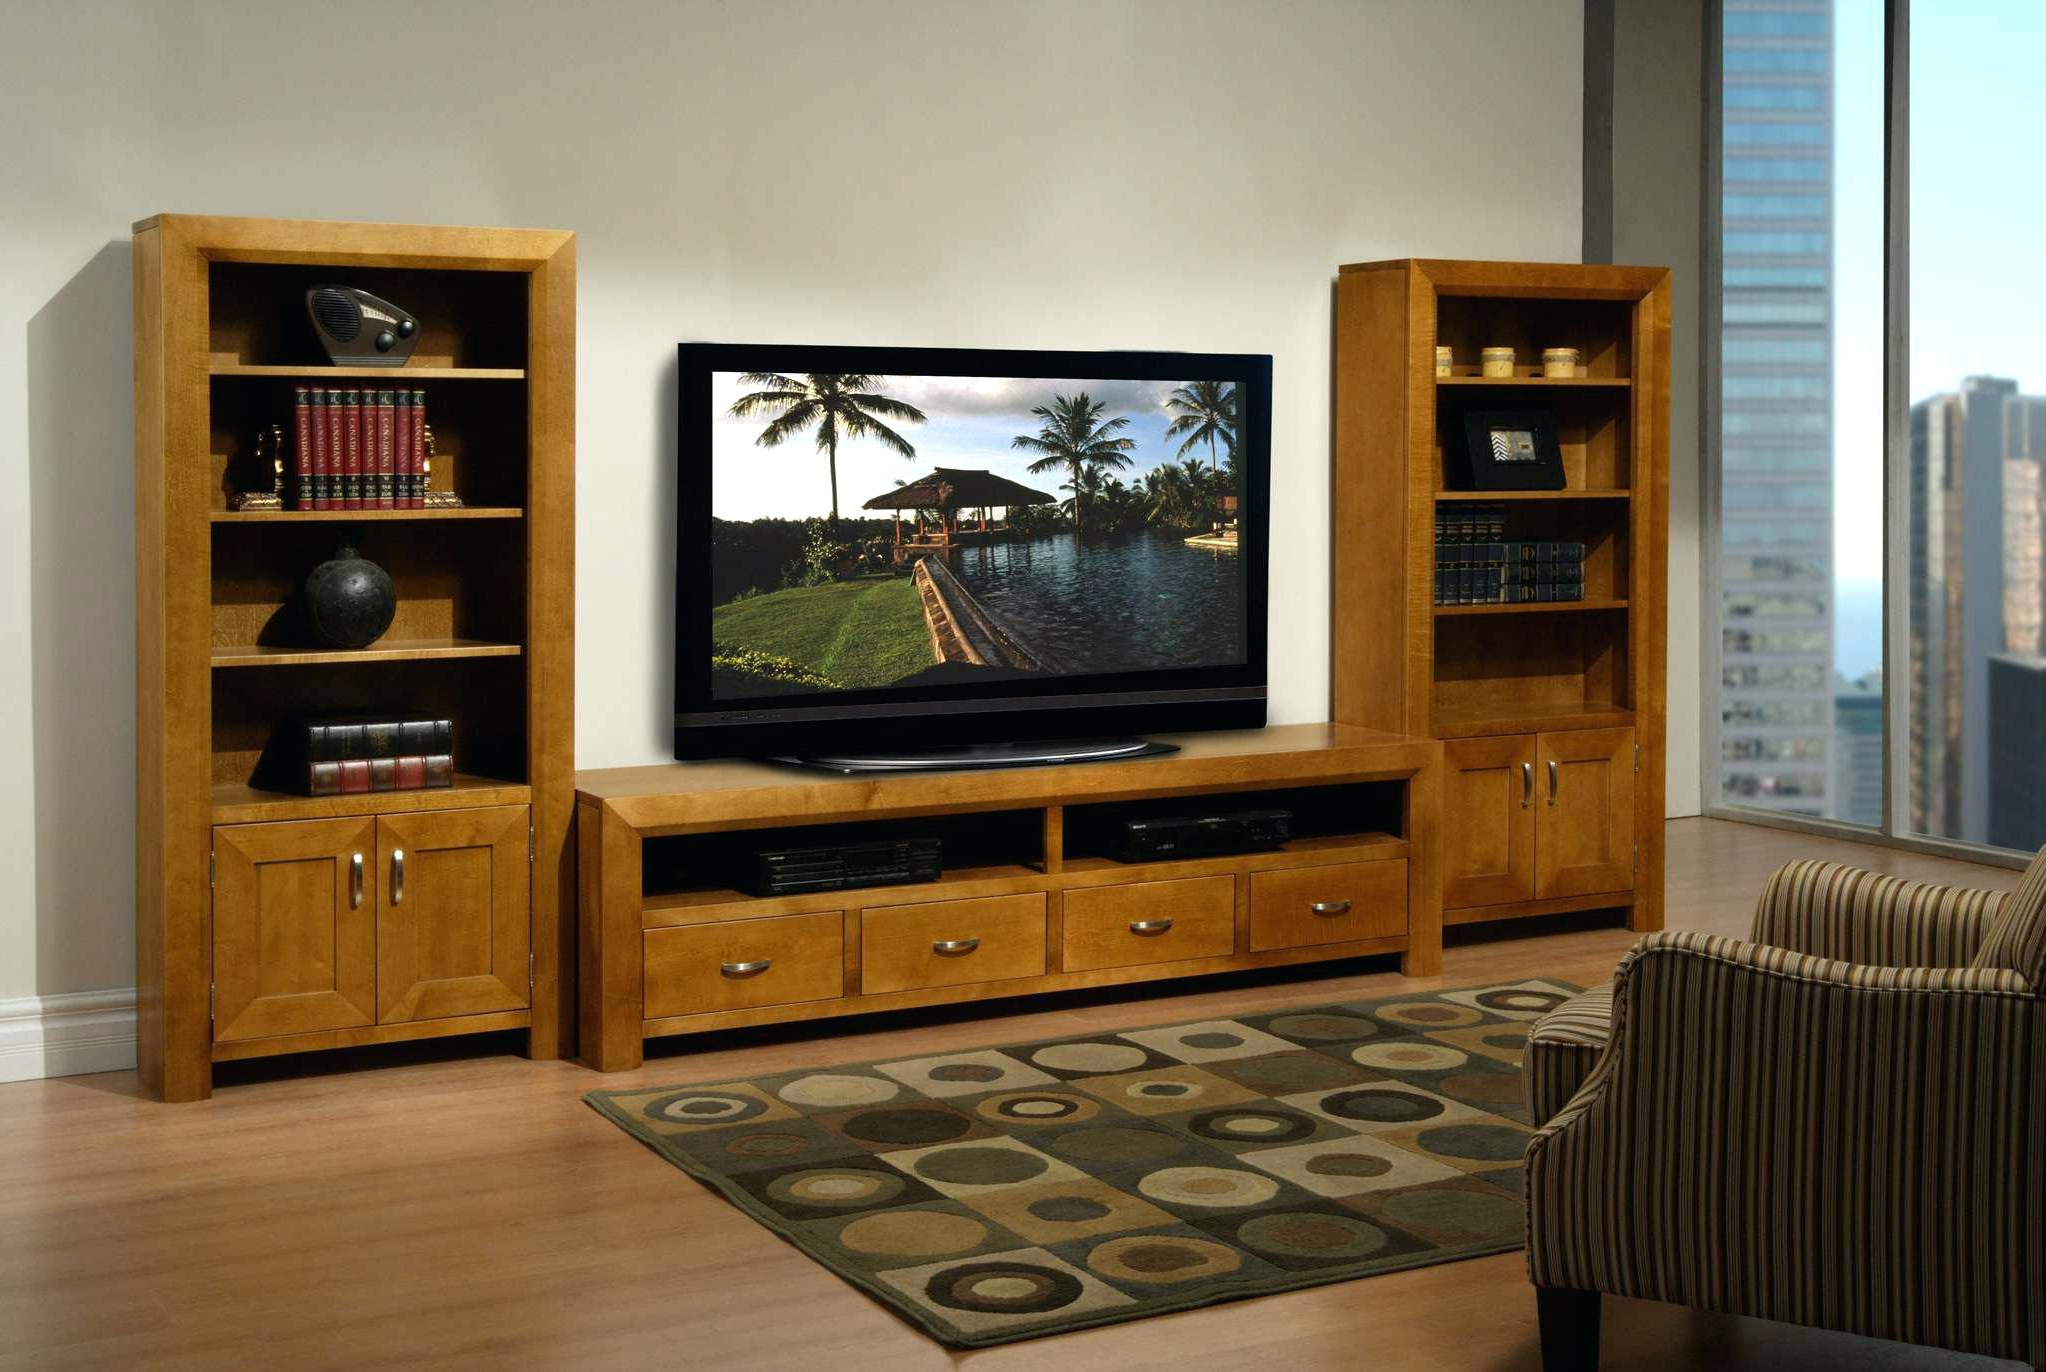 Fashionable Tv Stands For 55 Inch Flat Screen Tv – Kcscienceinc In Wooden Tv Stands For 55 Inch Flat Screen (View 15 of 20)